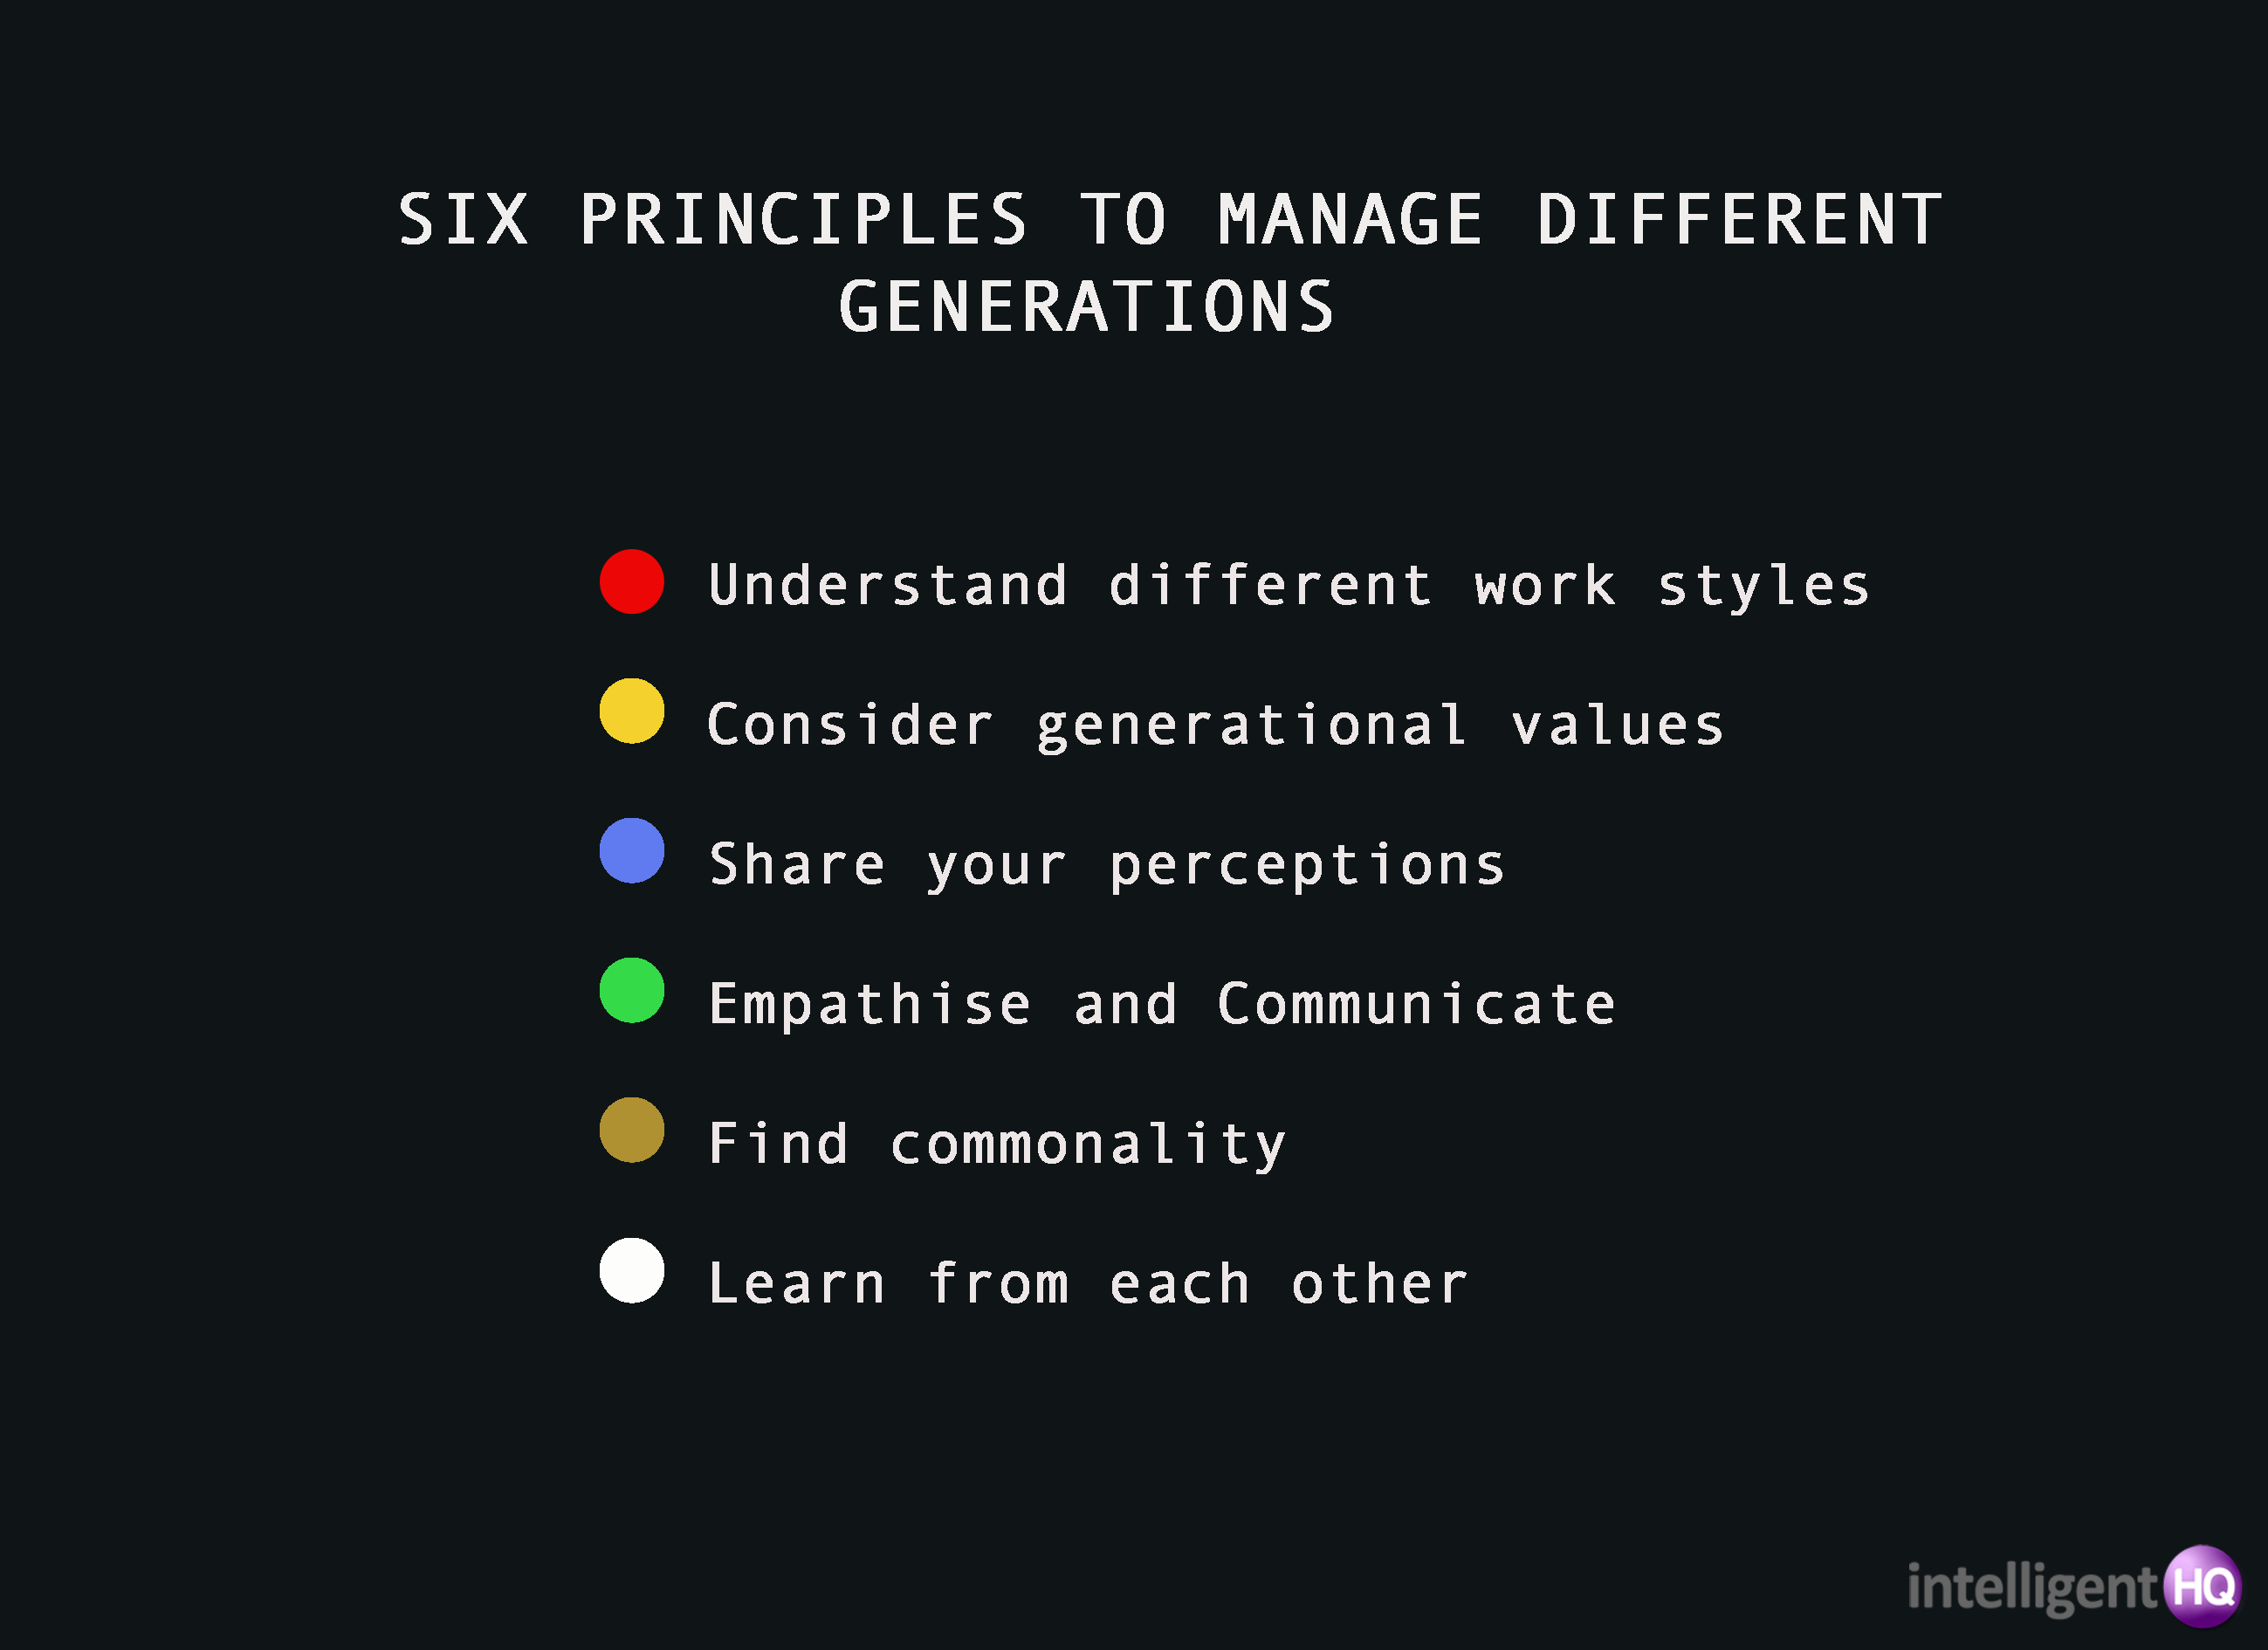 6 principles to manage different generations